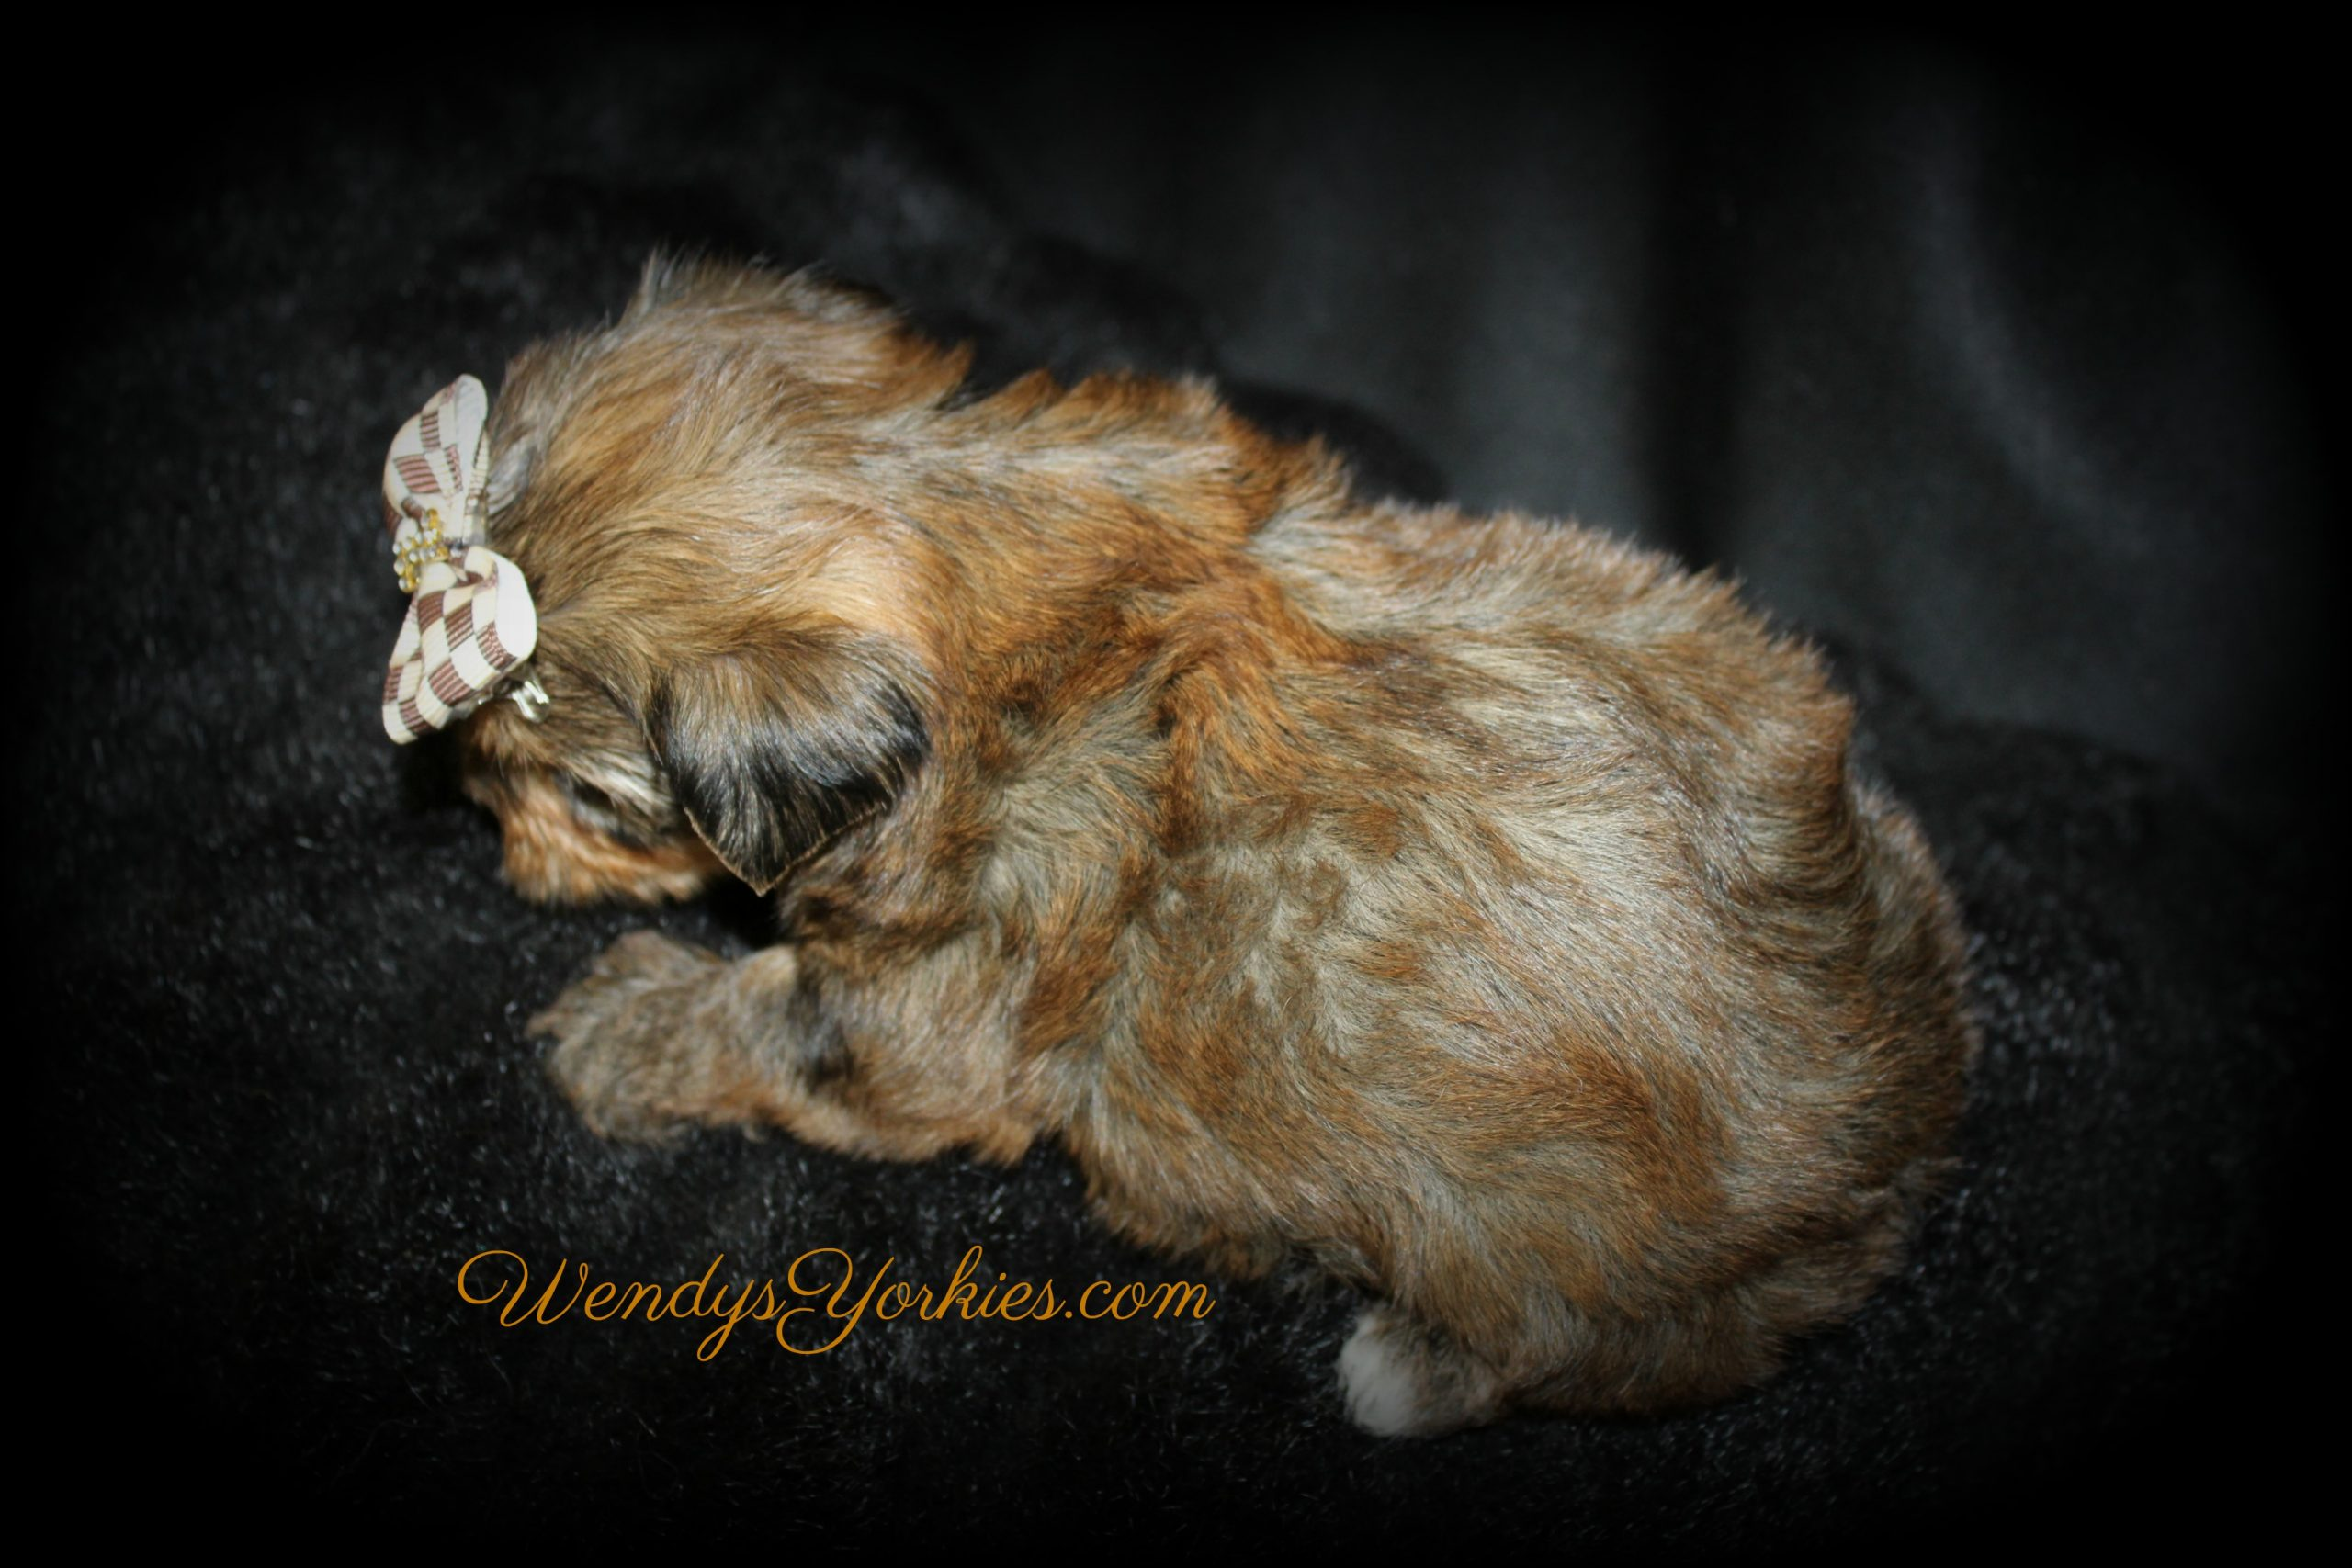 Sable Blonde Yorkie puppy for sale in Texas, Lela m3, WendysYorkies.com